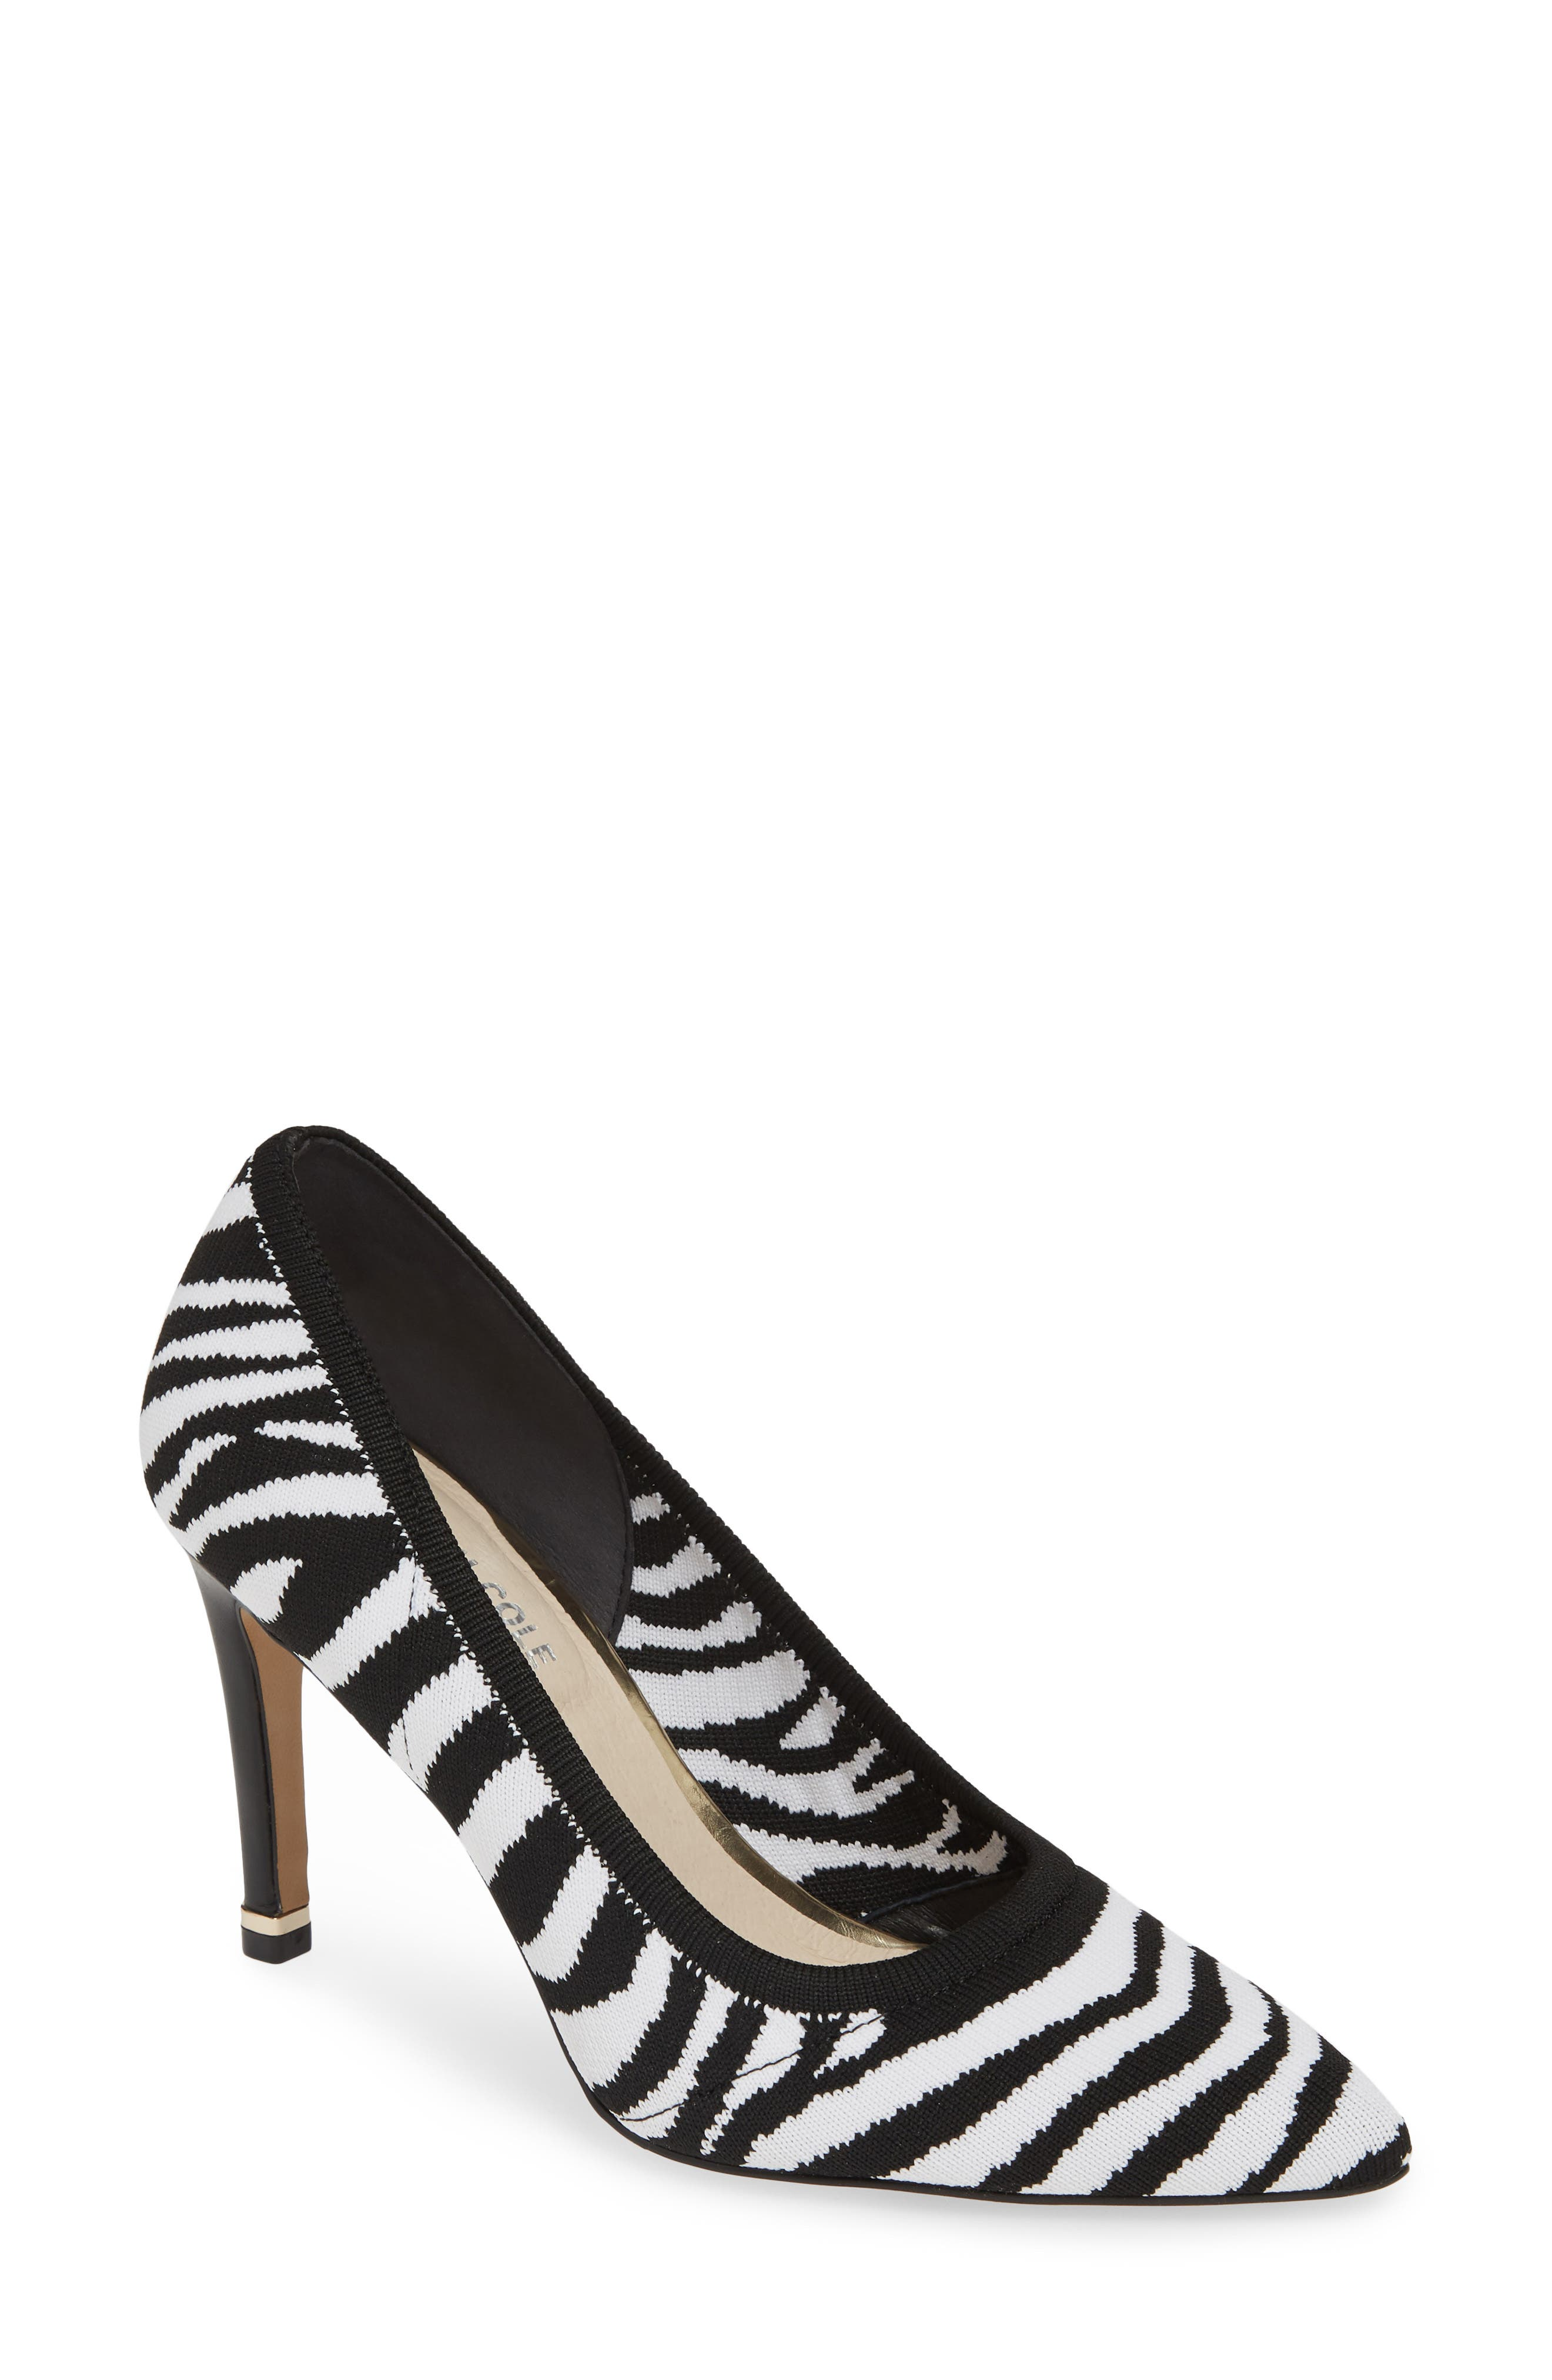 KENNETH COLE NEW YORK Riley 85 Pump, Main, color, BLACK/ WHITE KNIT